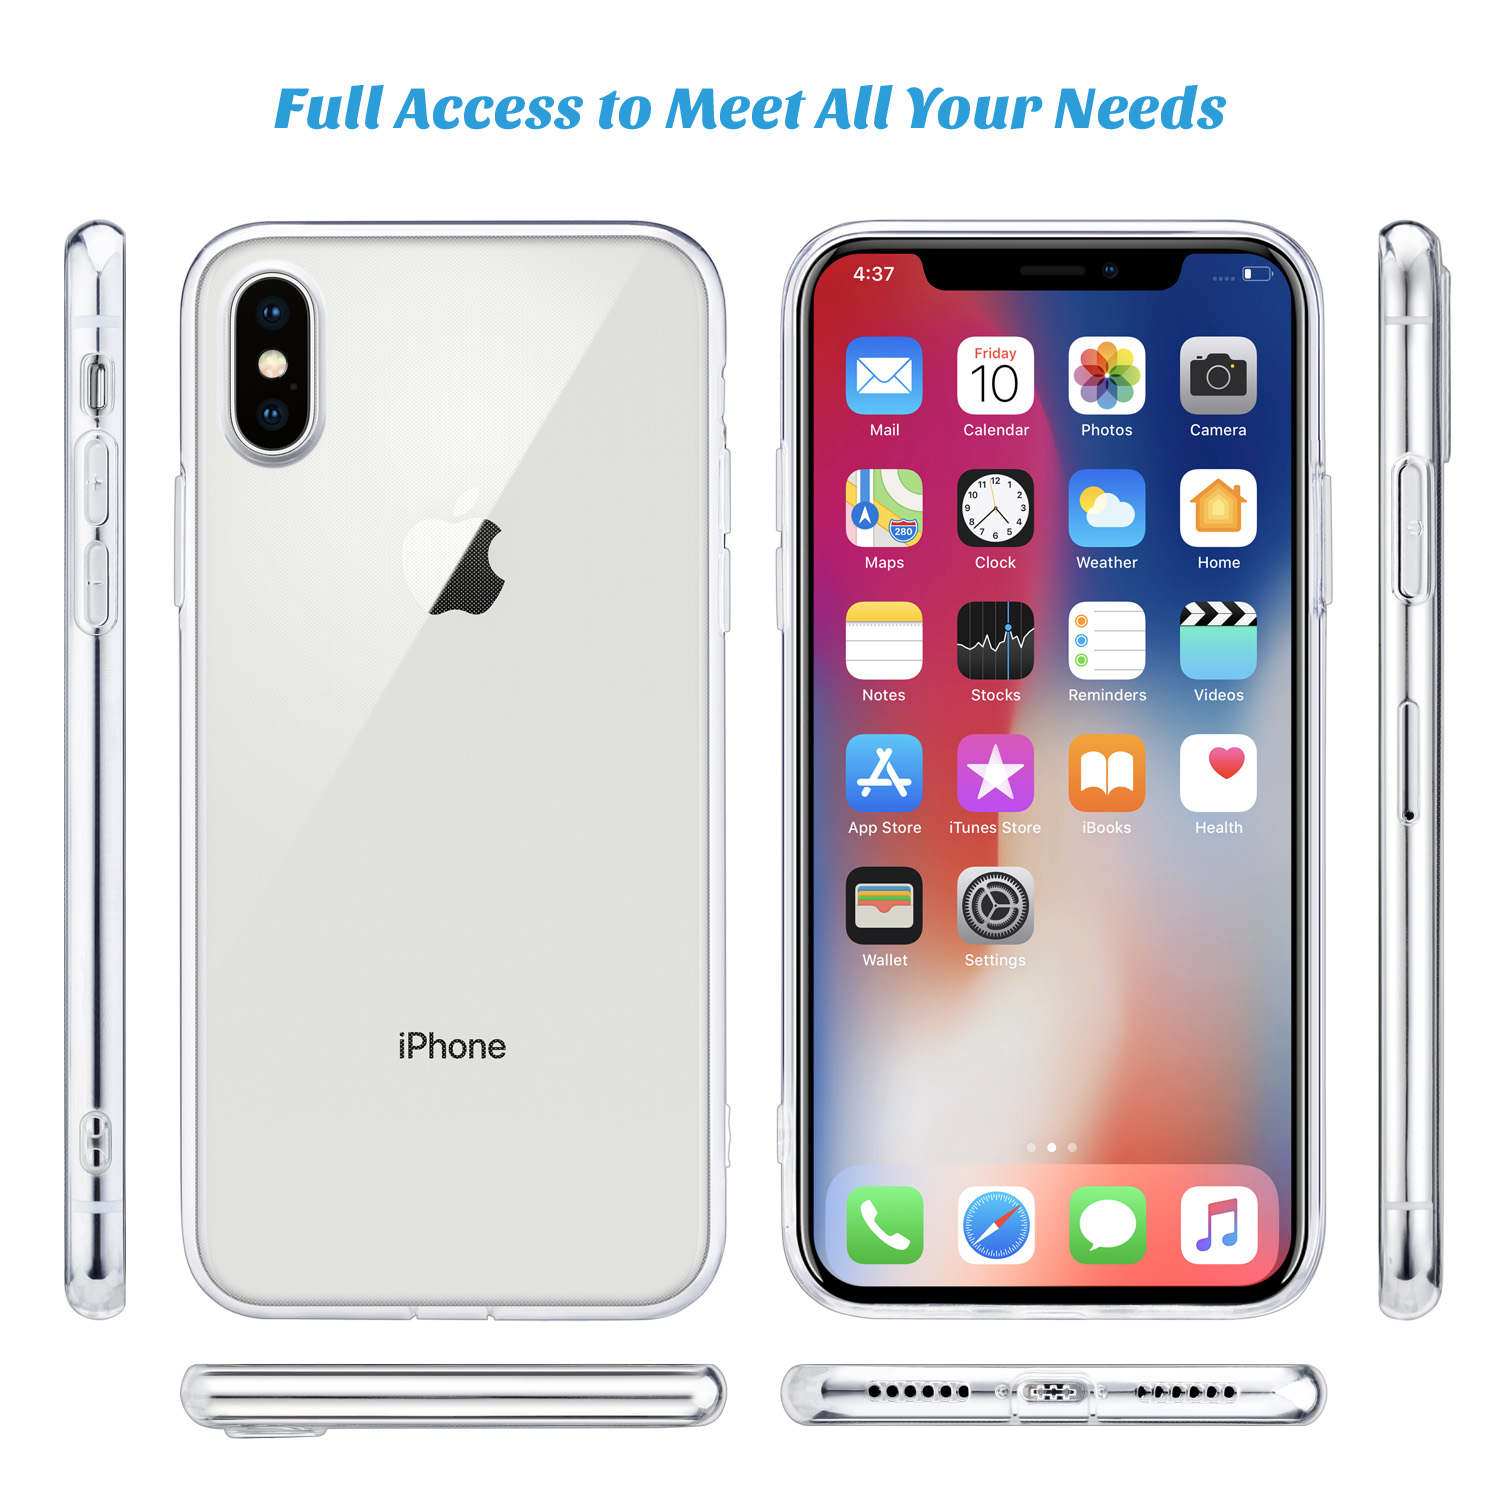 "HTB15Id3nwvD8KJjy0Flq6ygBFXaz For iPhone X Case, WEFOR Slim Clear Soft TPU Cover Support Wireless Charging for Apple 5.8"" iPhone X /iPhone 10 (2017 Release)"